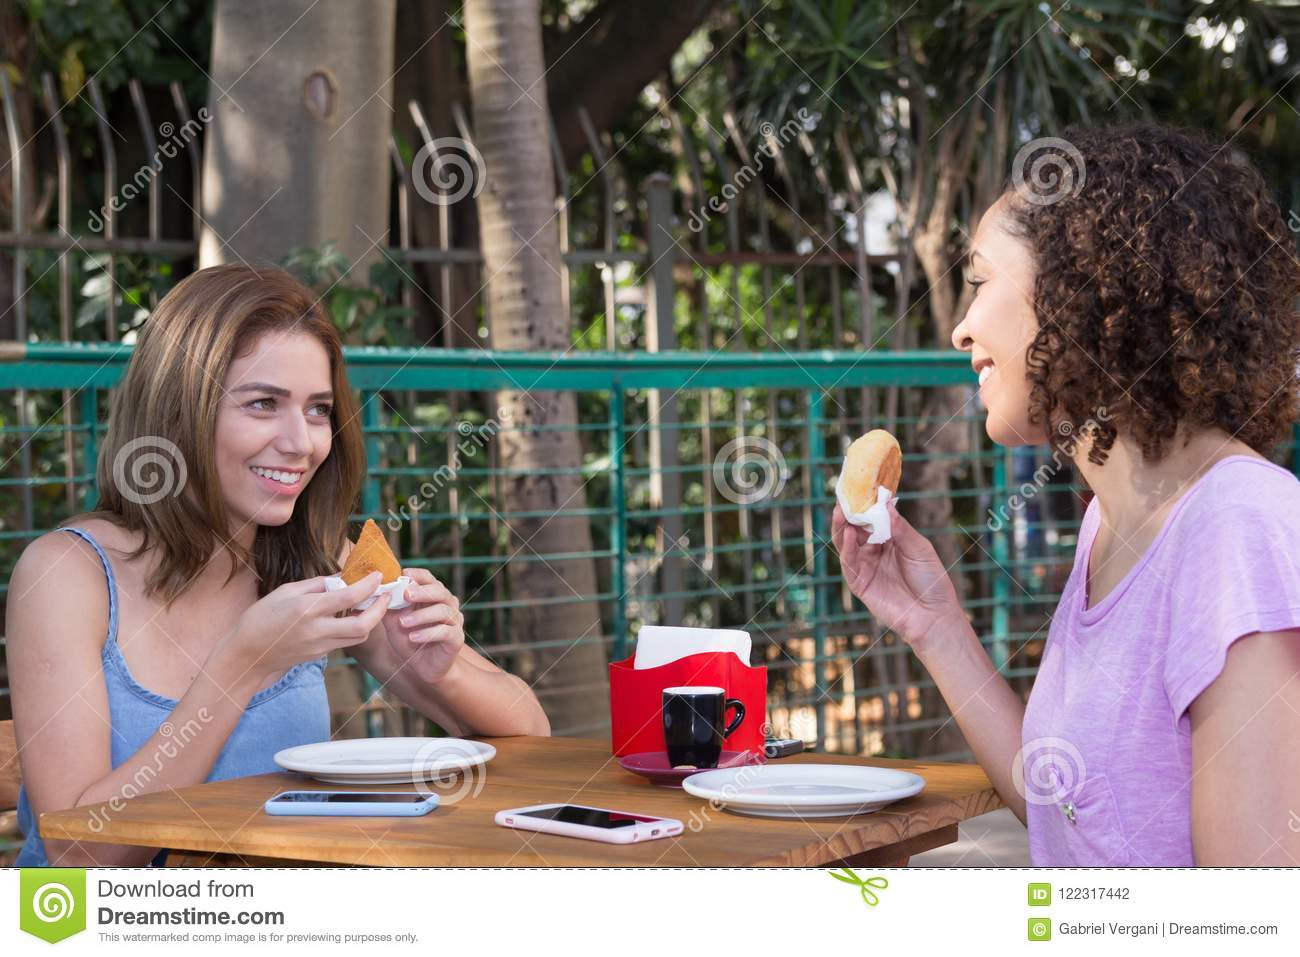 Brazilian girl friends eating pao de queijo and coxinha food snack outdoors in Sao Paulo during summer.